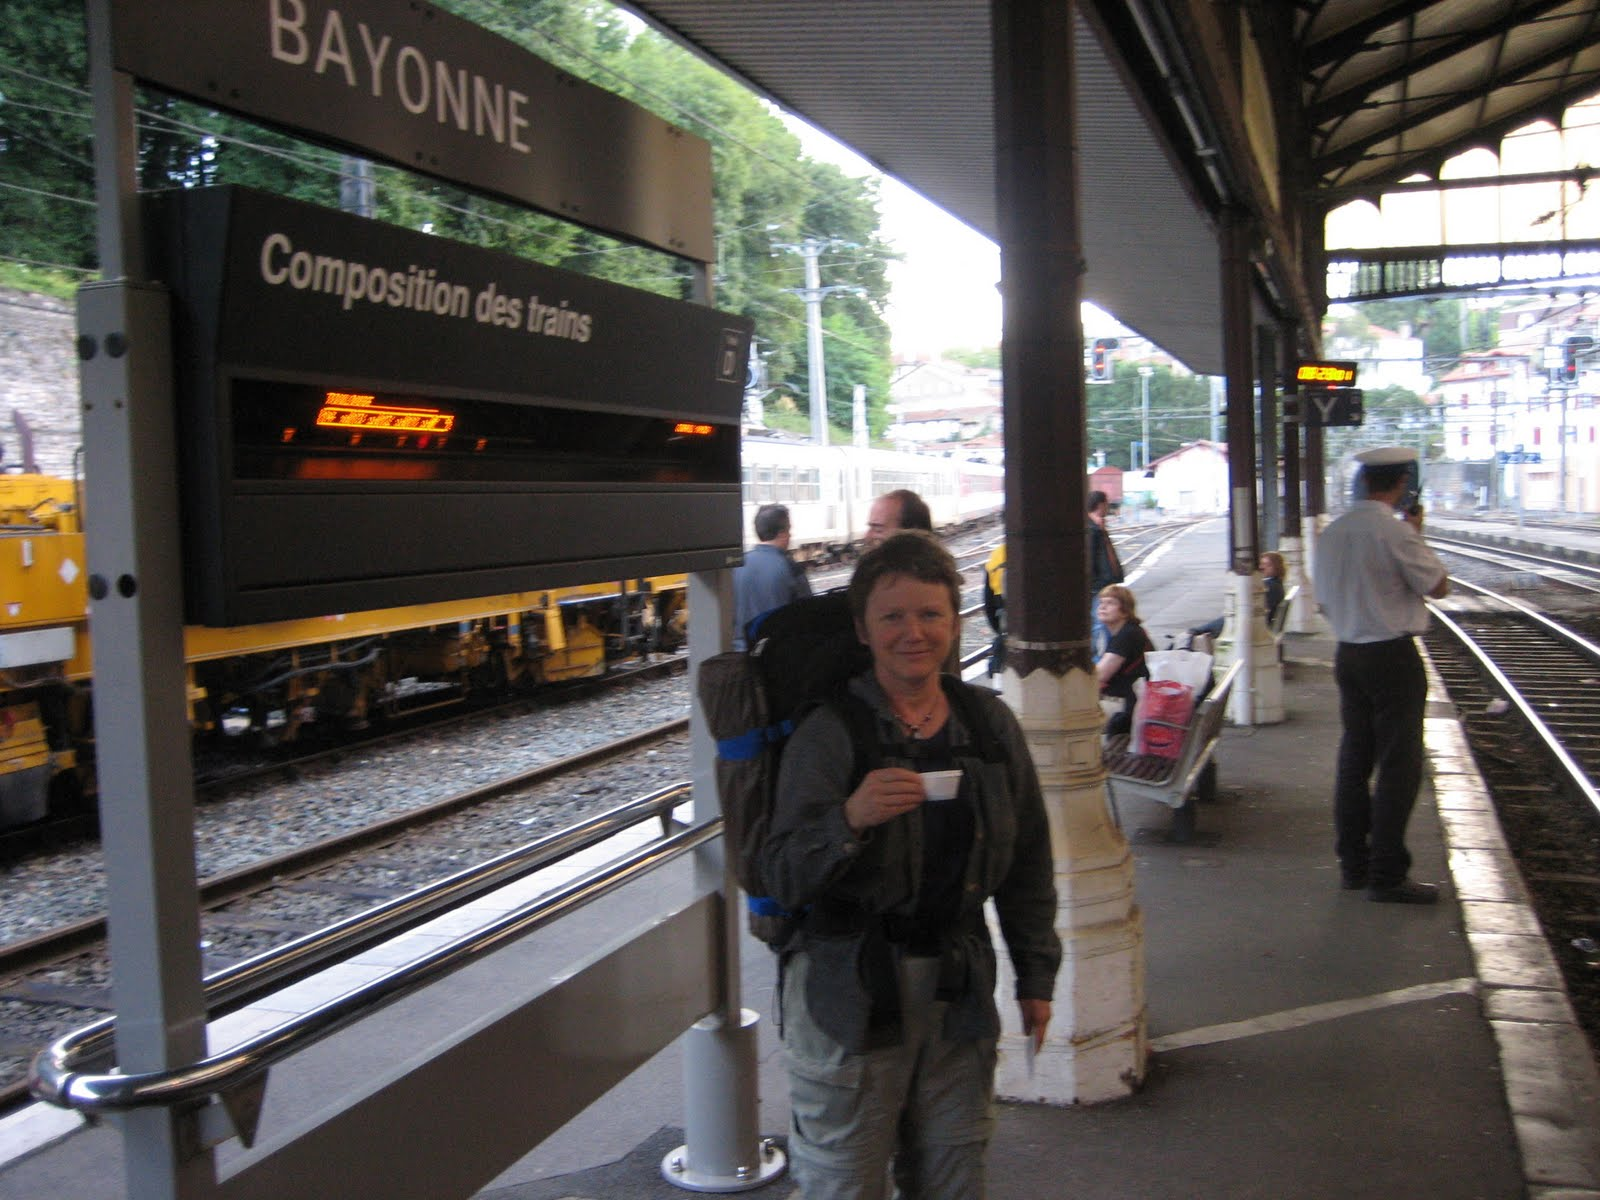 Annie 39 s simple life starting st jean pied de port - Train bayonne saint jean pied de port ...